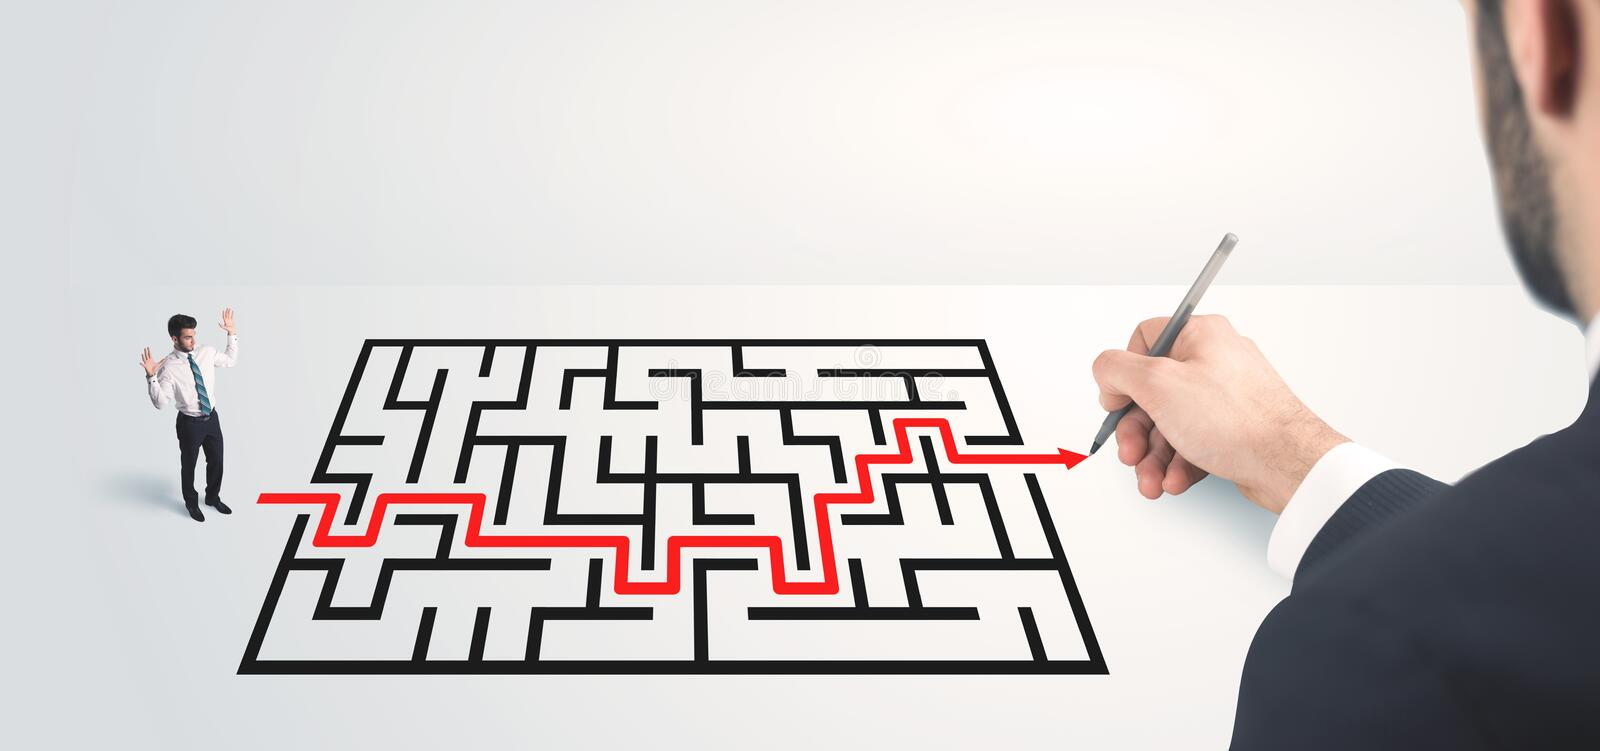 Business man looking at hand drawing solution. Maze solution concept stock image